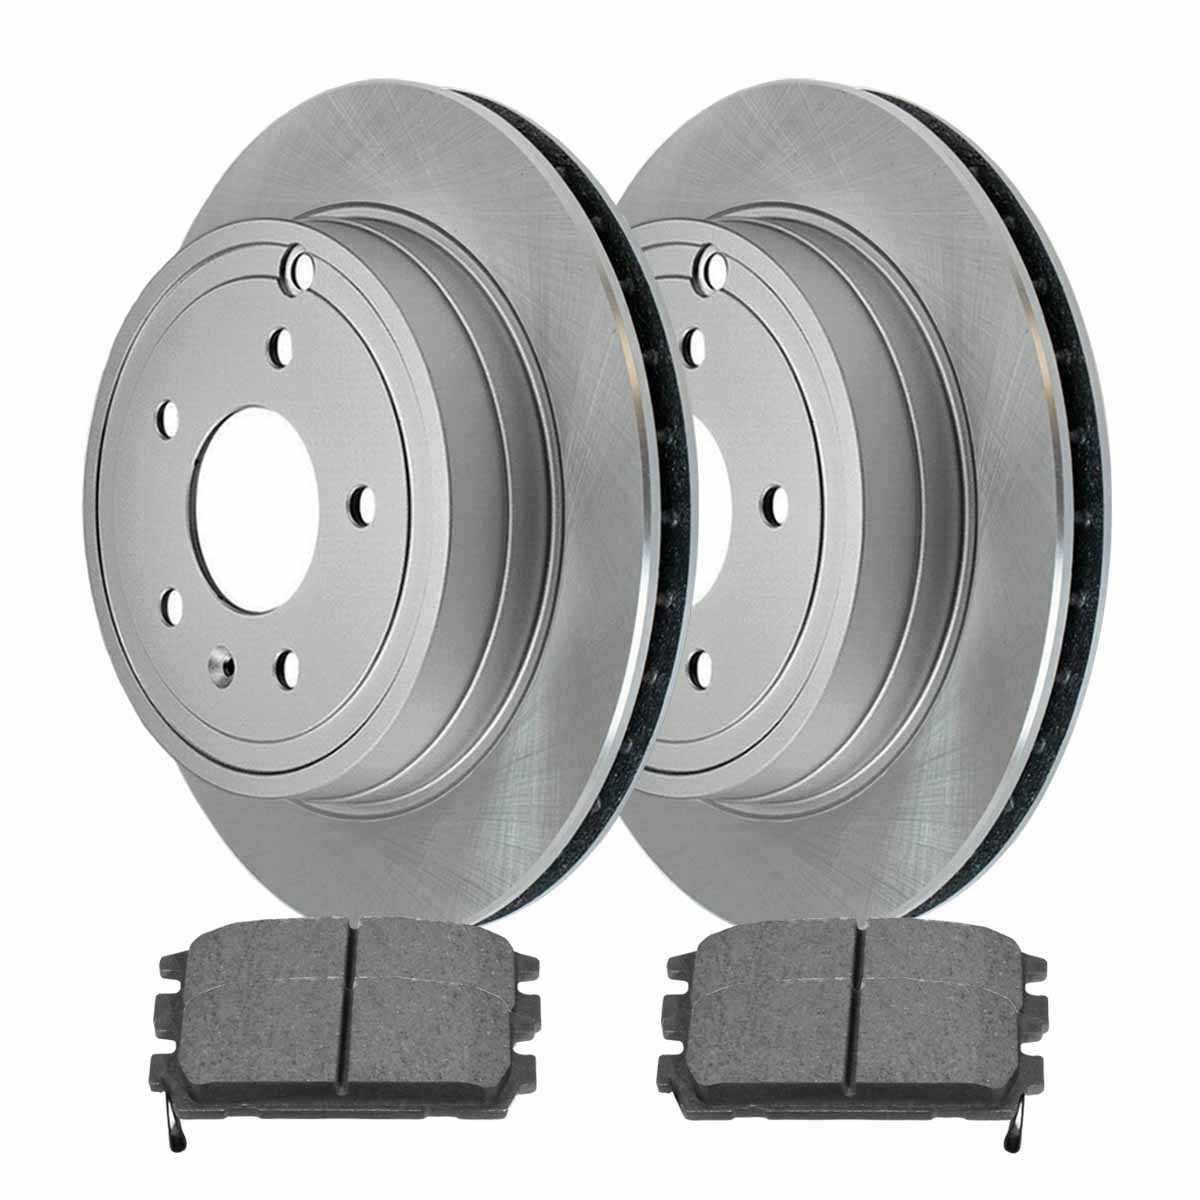 Complete rear kit pair of disc rotors and premium